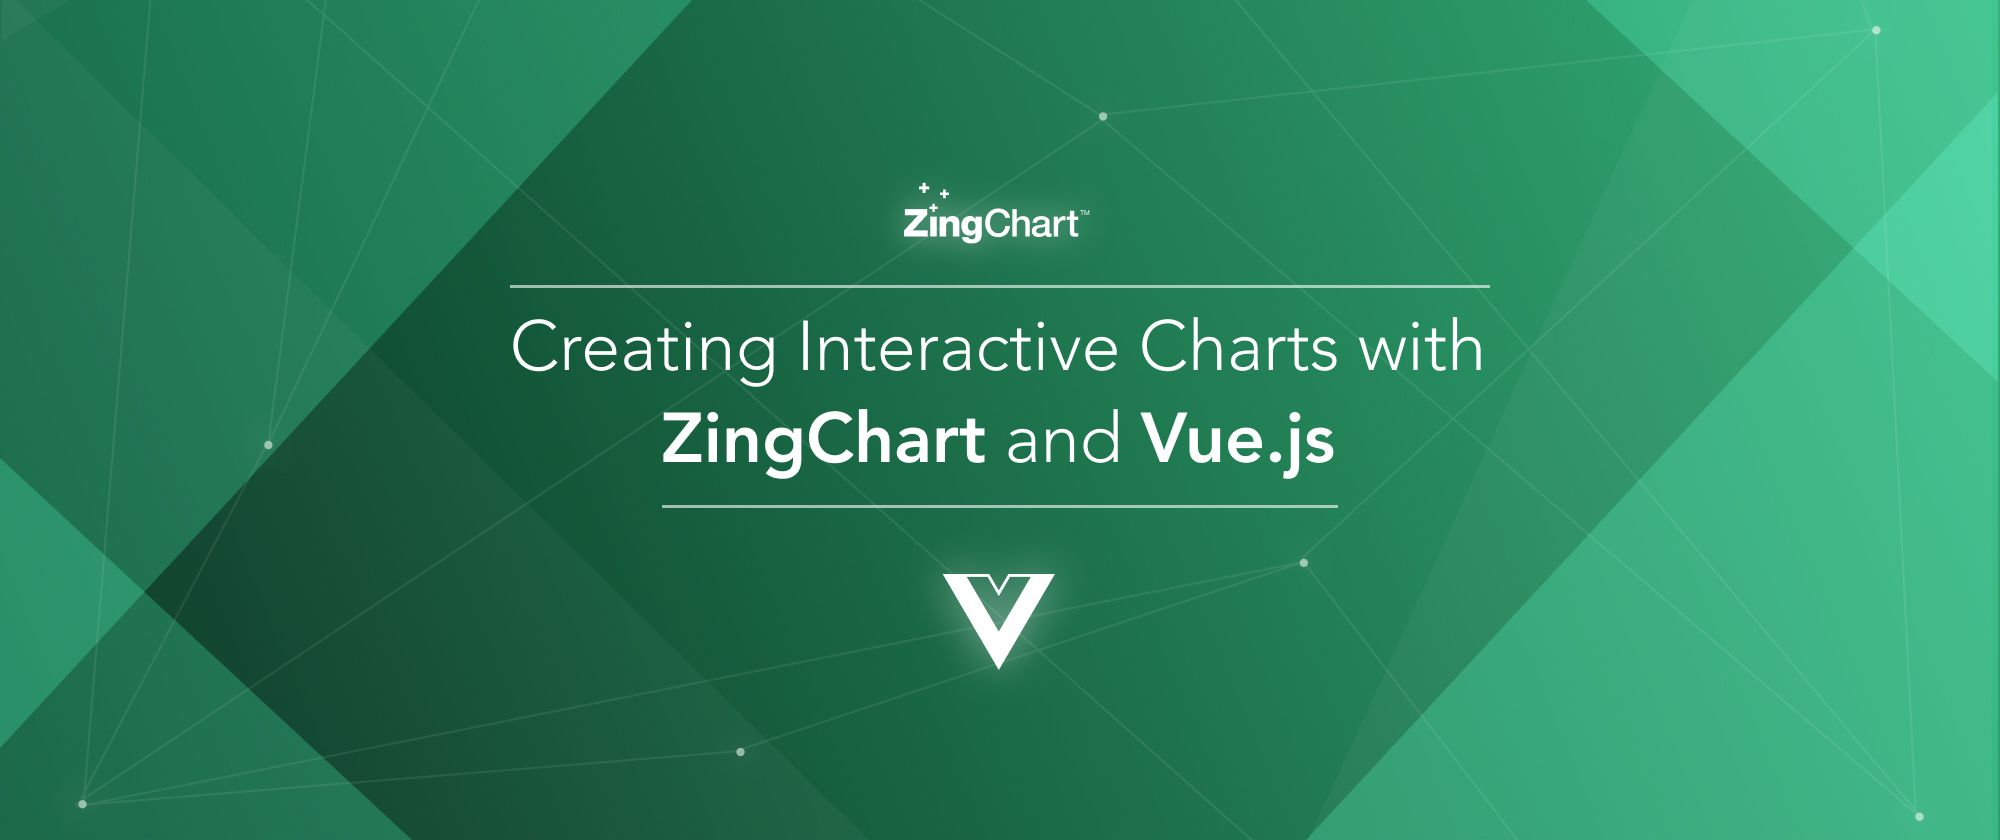 """Cover image for """"Creating Charts with ZingChart and Vue.js"""" blog post"""